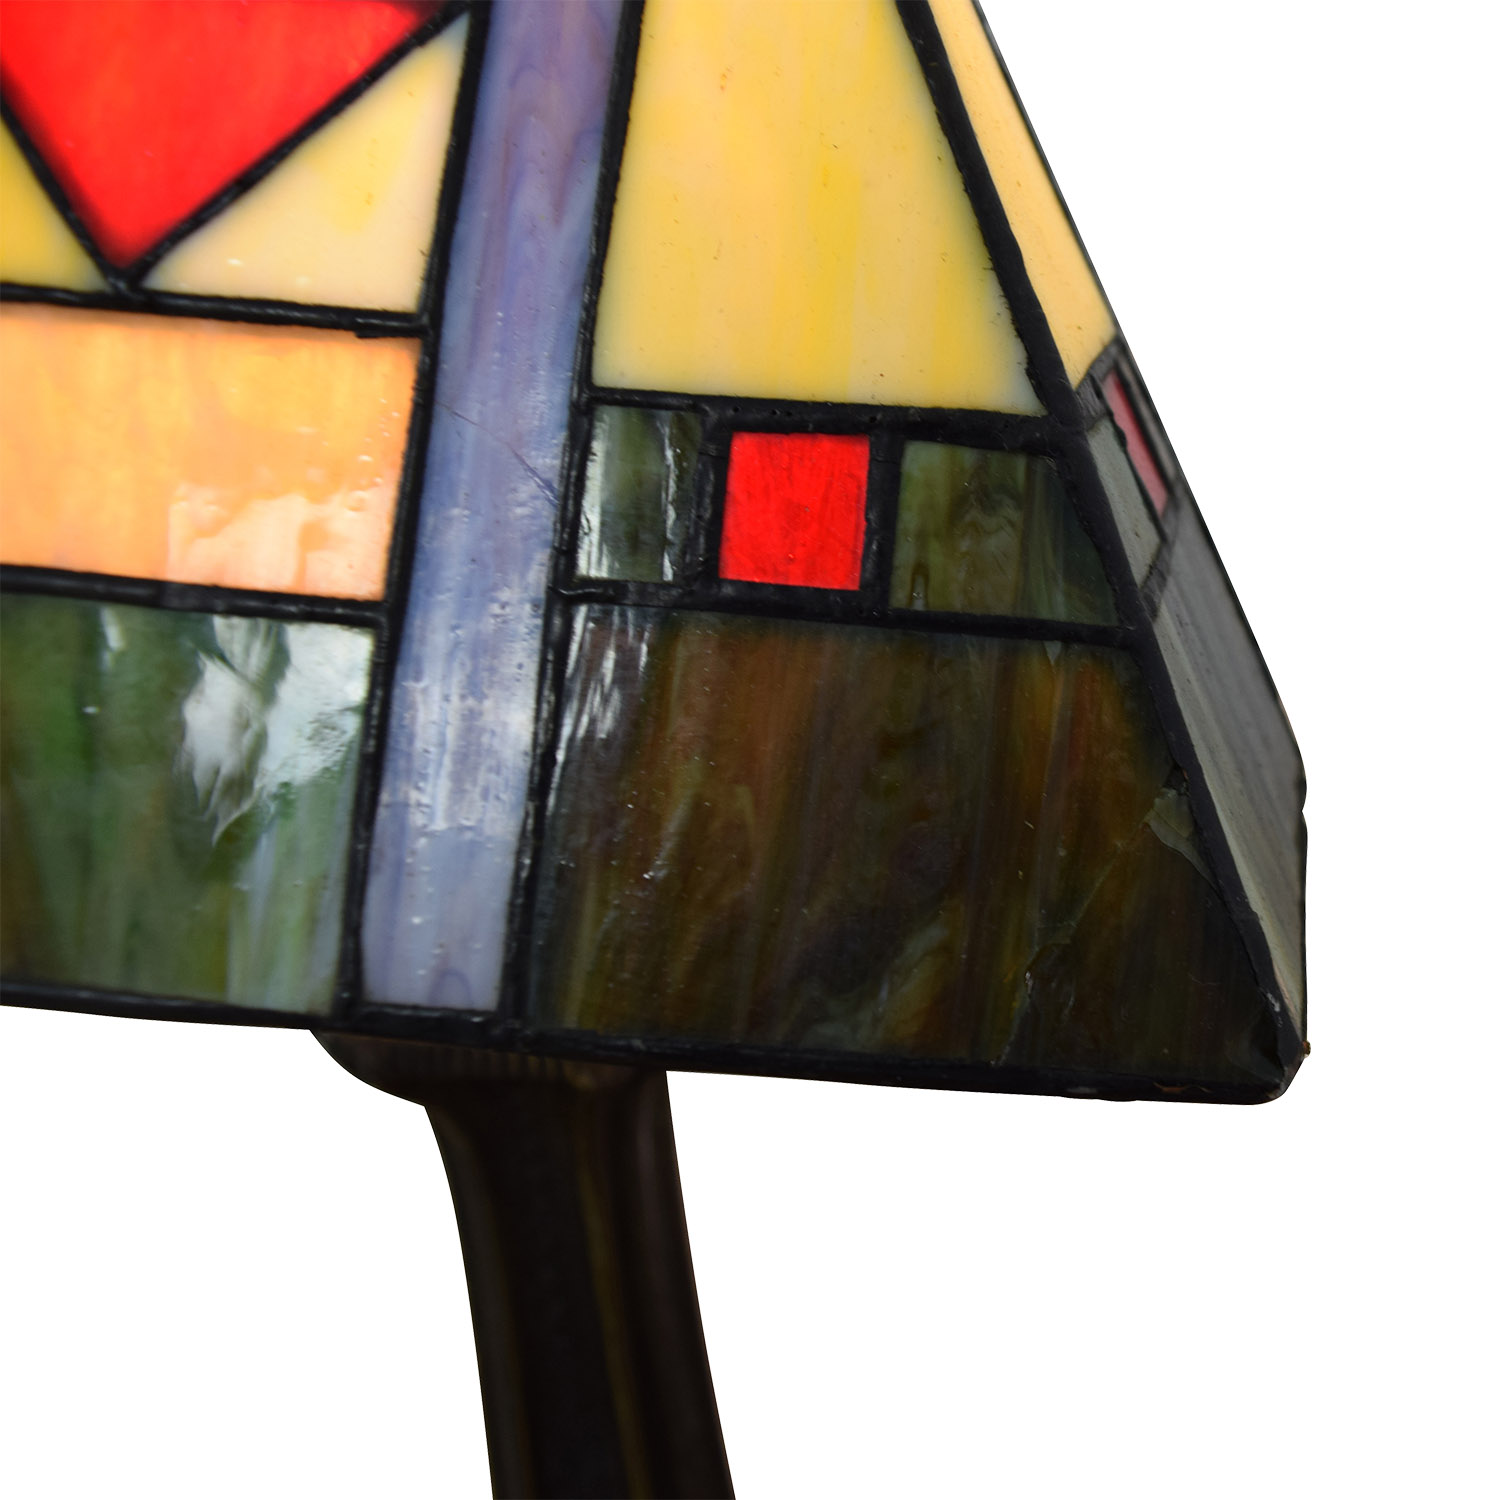 stained table p glass each multi southwest cfl bulbs lamp led lamps austin with earth bulb